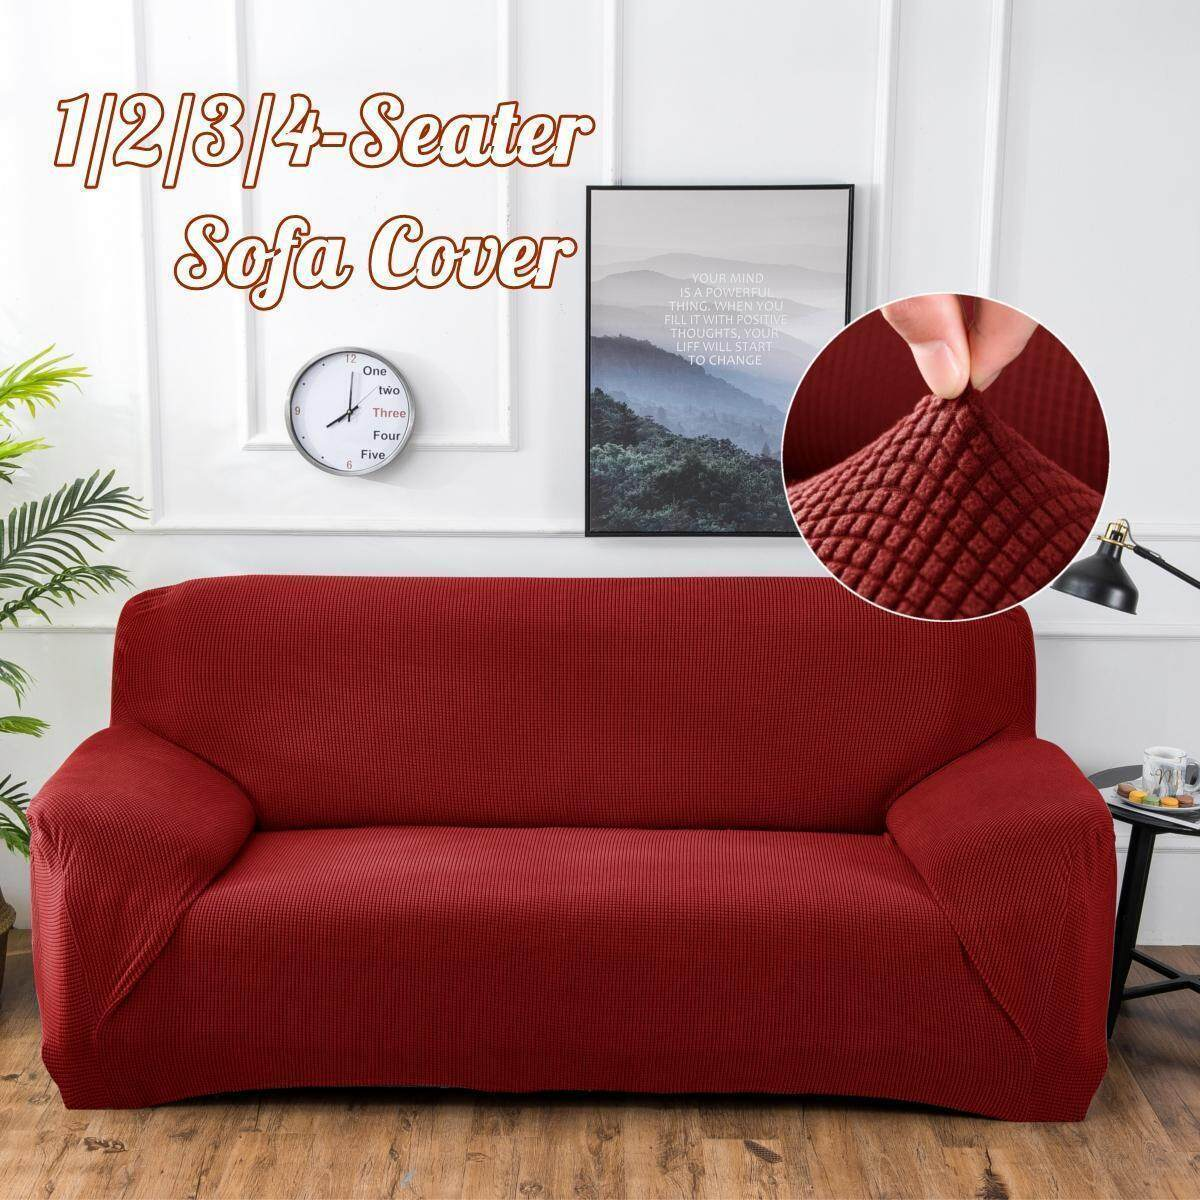 Polar Fleece Thickened Spandex Elastic Stretch Sofa Cover Slipcover Couch  Rose Red 3 Seat Pillow Case Chair Cover